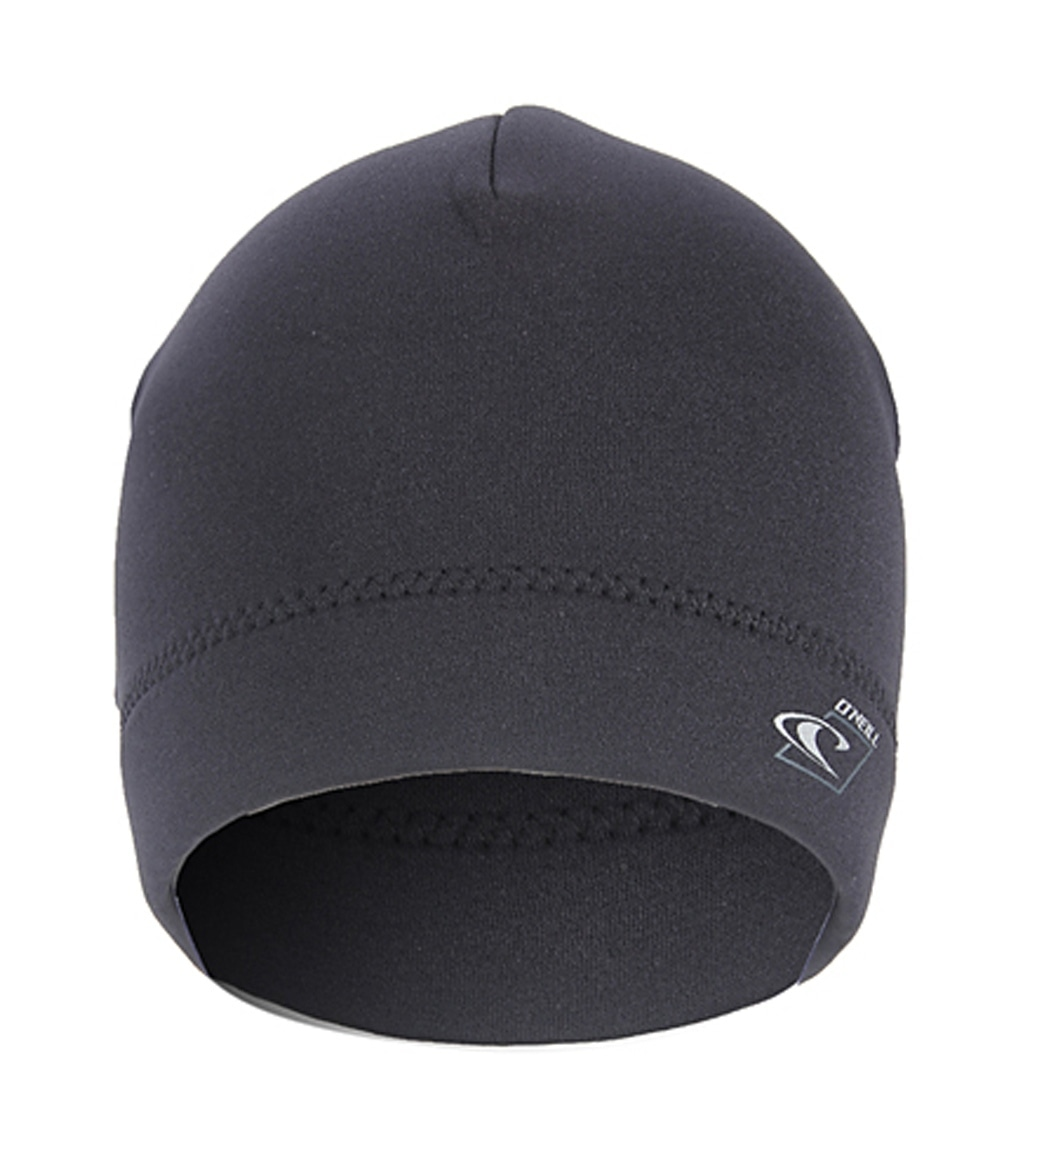 f6cf2daee O'Neill Neoprene Beanie 2MM Wetsuit Neoprene Cap at SwimOutlet.com